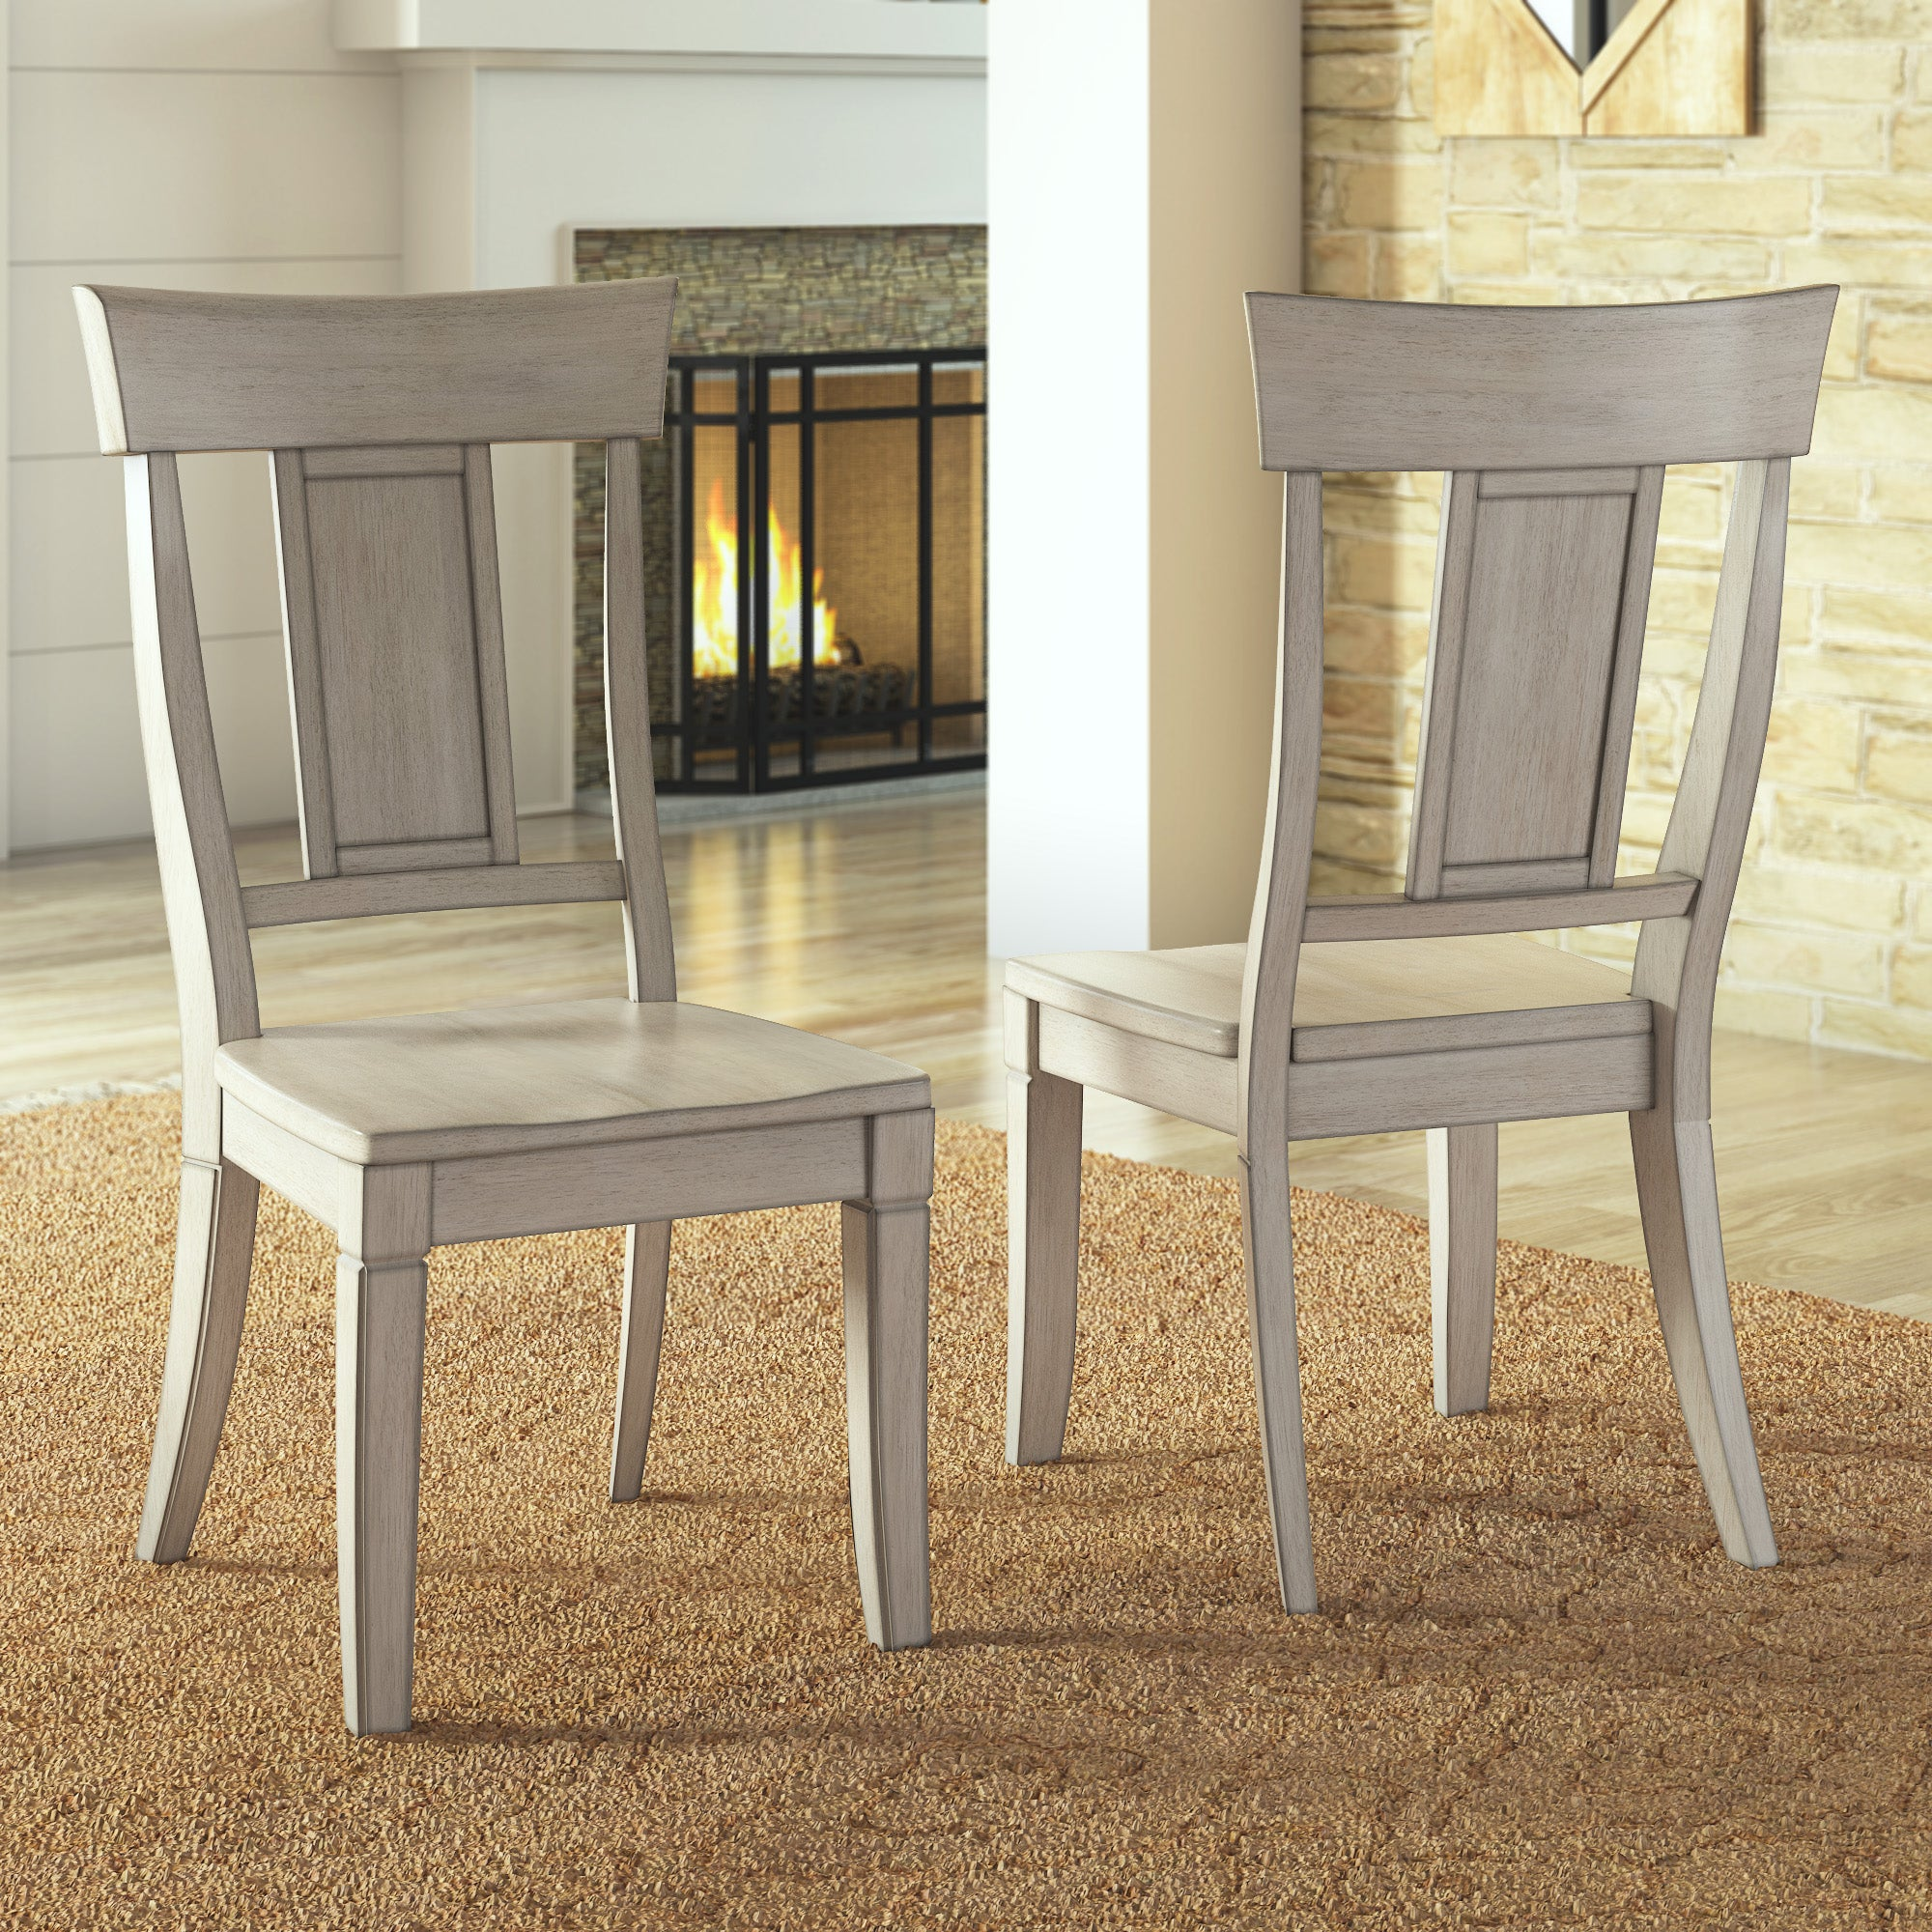 Panel Back Wood Dining Chair (Set of 2) - Antique White